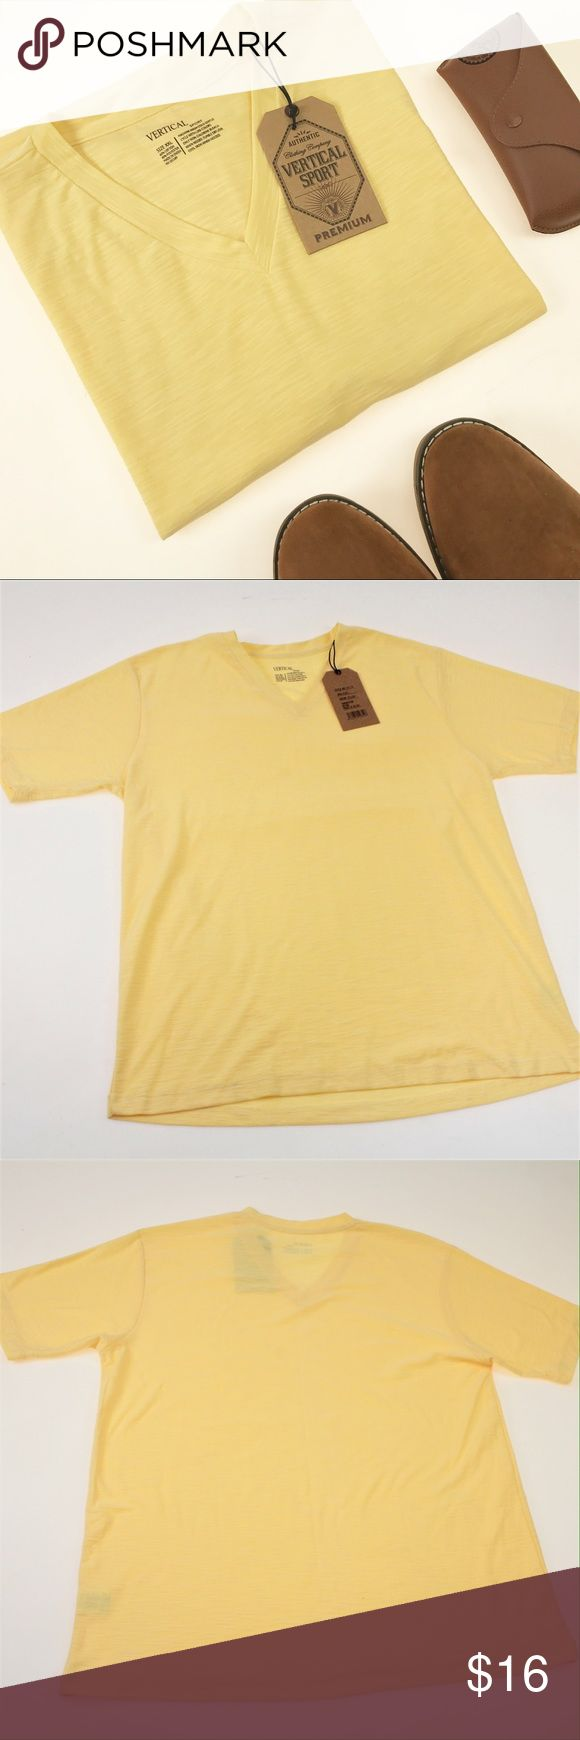 Yellow Basic V-Neck Tee or Under Shirt This classic fit tee comes in a bright yet classy canary yellow color. The collar is a v-neck, but not too deep! This shirt is a very comfortable 60% Cotton, 40% Polyester blend. Pair it with casual shorts for warm weather wear or use as an undershirt to add some color to your layering. #8TSIC Shirts Tees - Short Sleeve